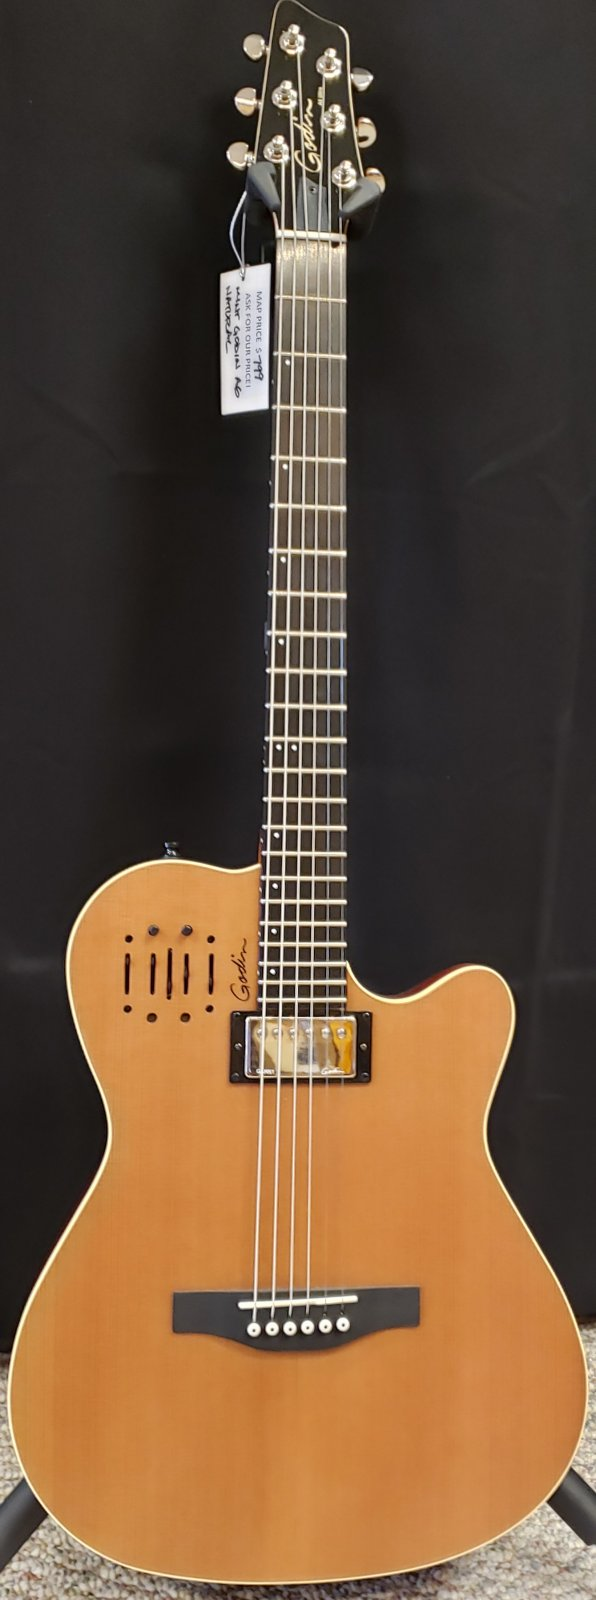 USED Godin A6 Ultra Natural Mint w/bag